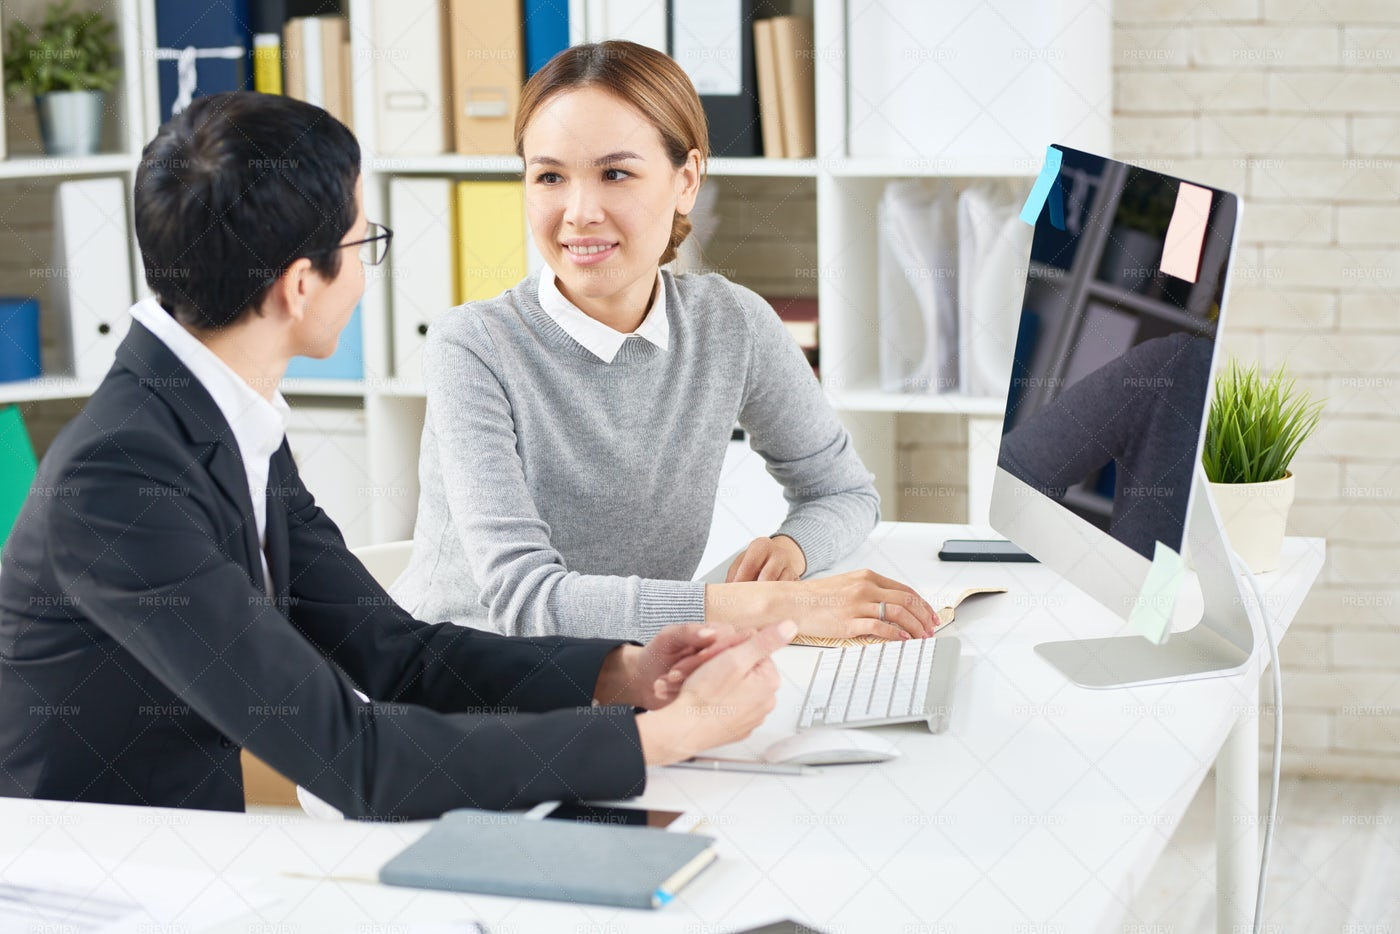 Working Meeting At Open Plan Office: Stock Photos